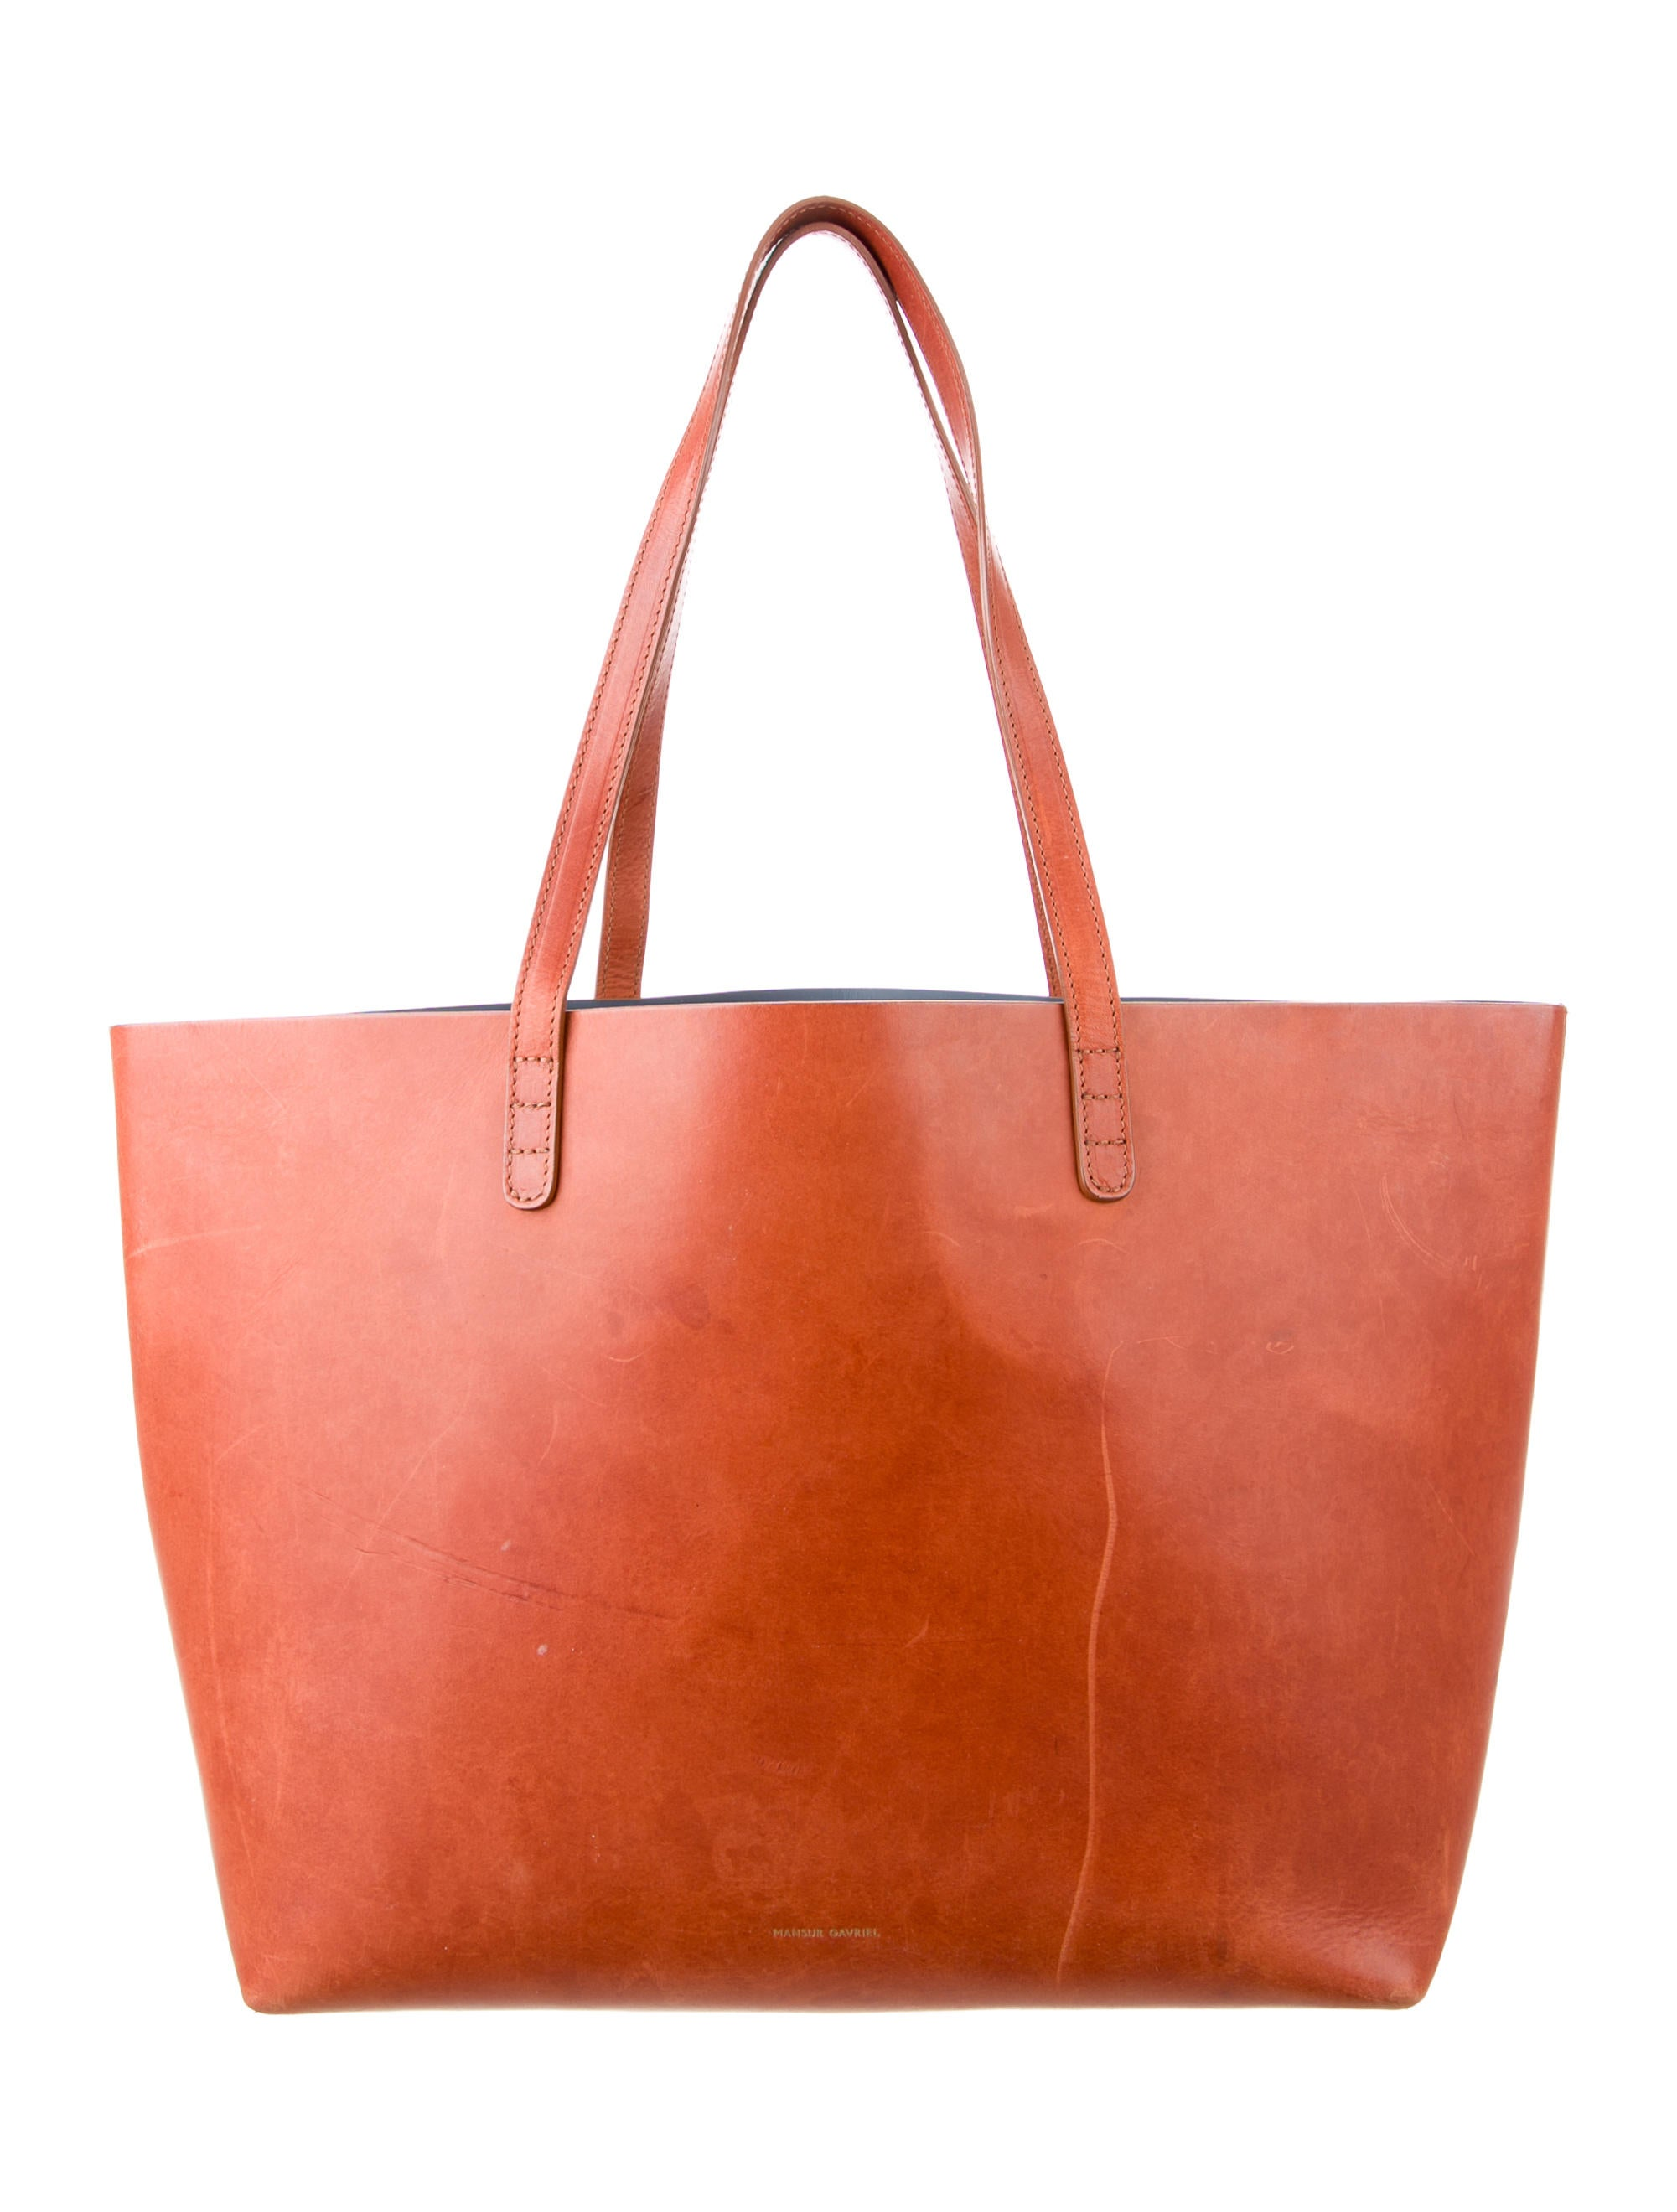 Shop women's outlet handbags, purses & leather wallets sale. G.H. Bass & Co. leather handbags are classic additions to your wardrobe. Free shipping $75+.